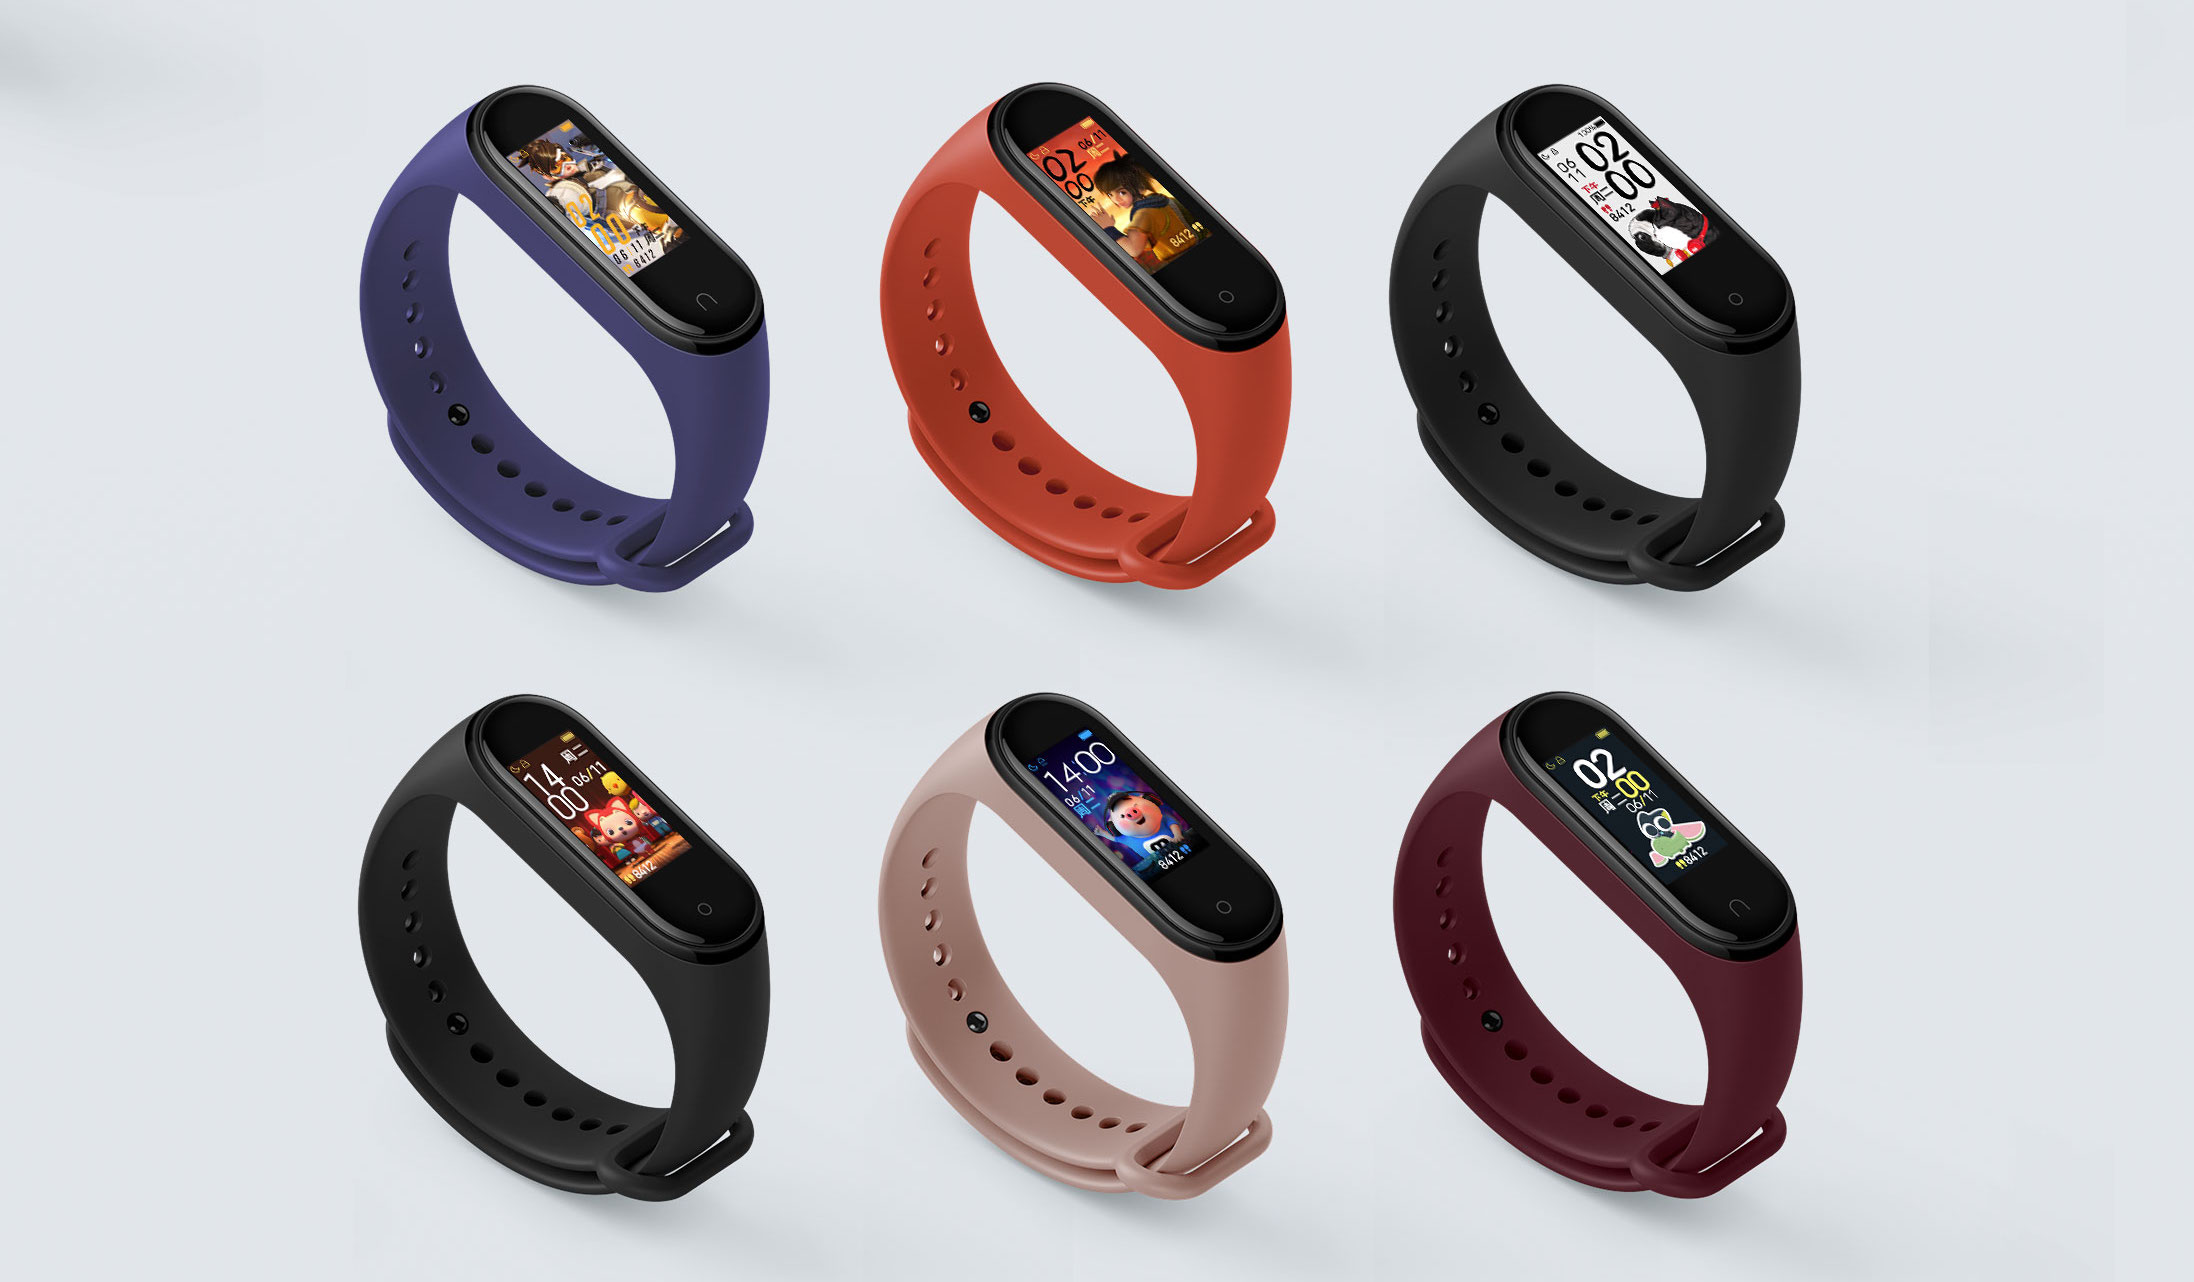 Xiaomi unveils Mi Band 4 fitness tracker with color screen, NFC, and